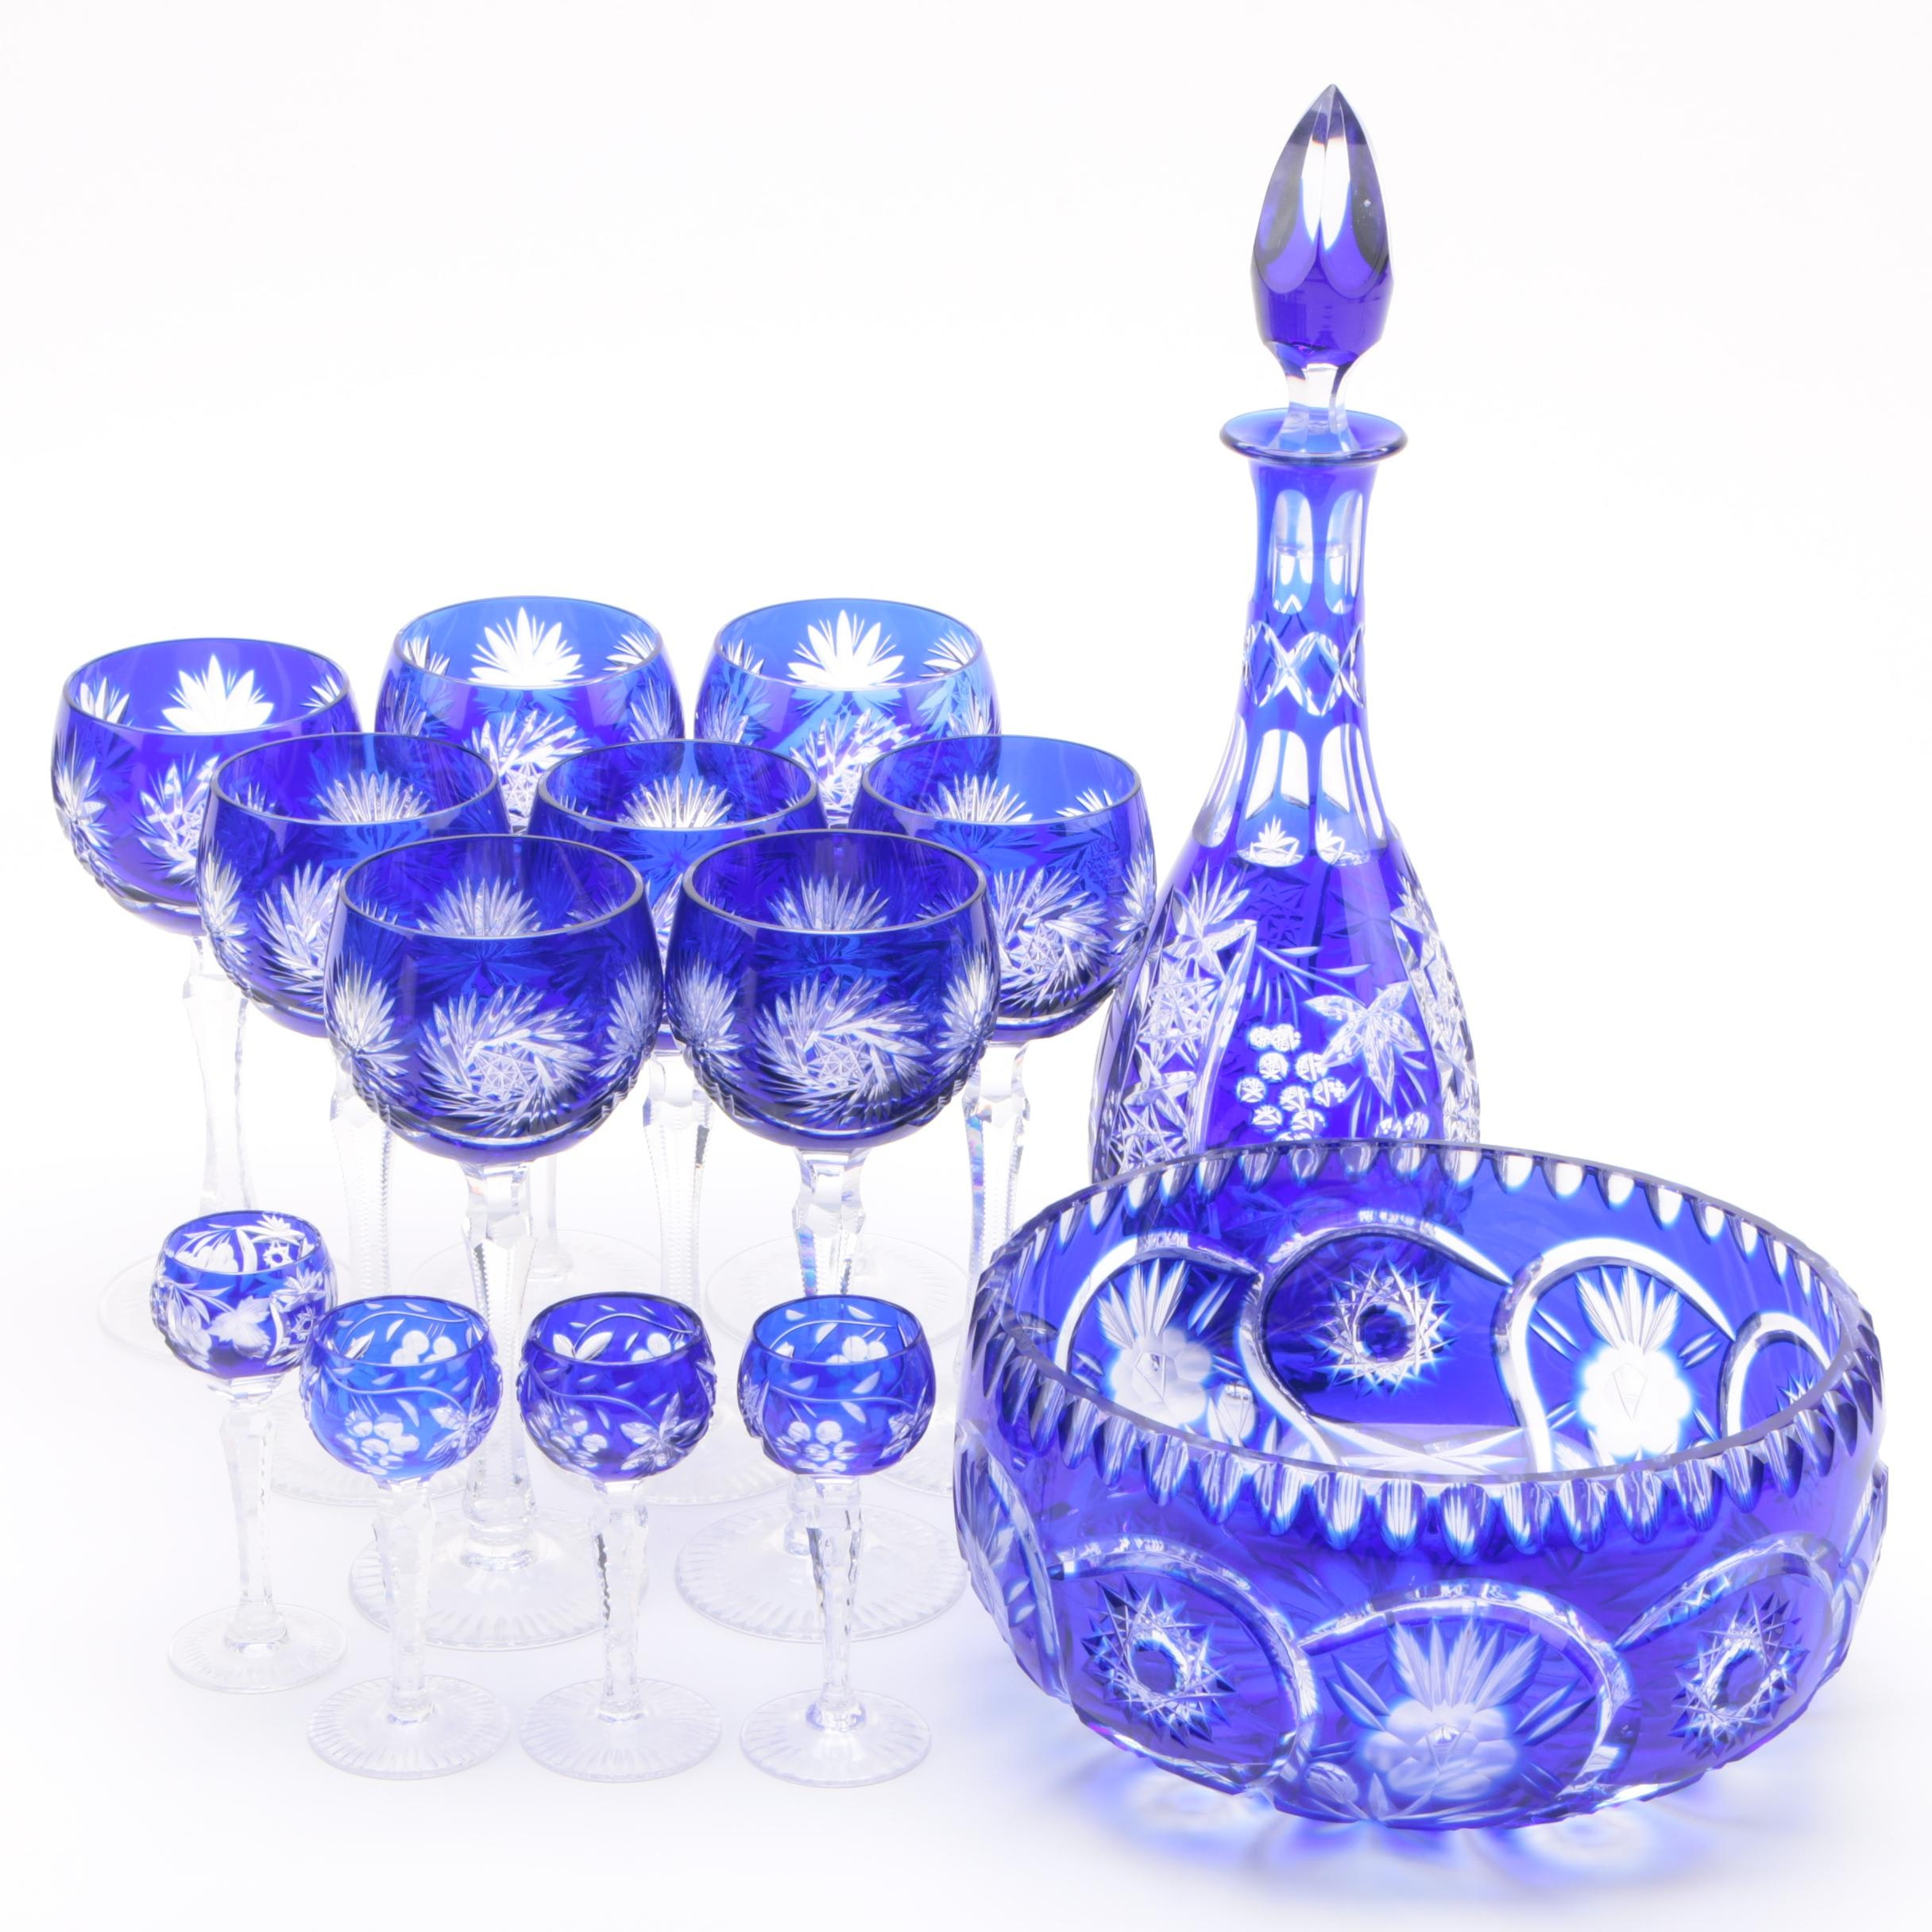 Cobalt Cut to Clear Stemware and Decanter with Serving Bowl featuring Nachtmann